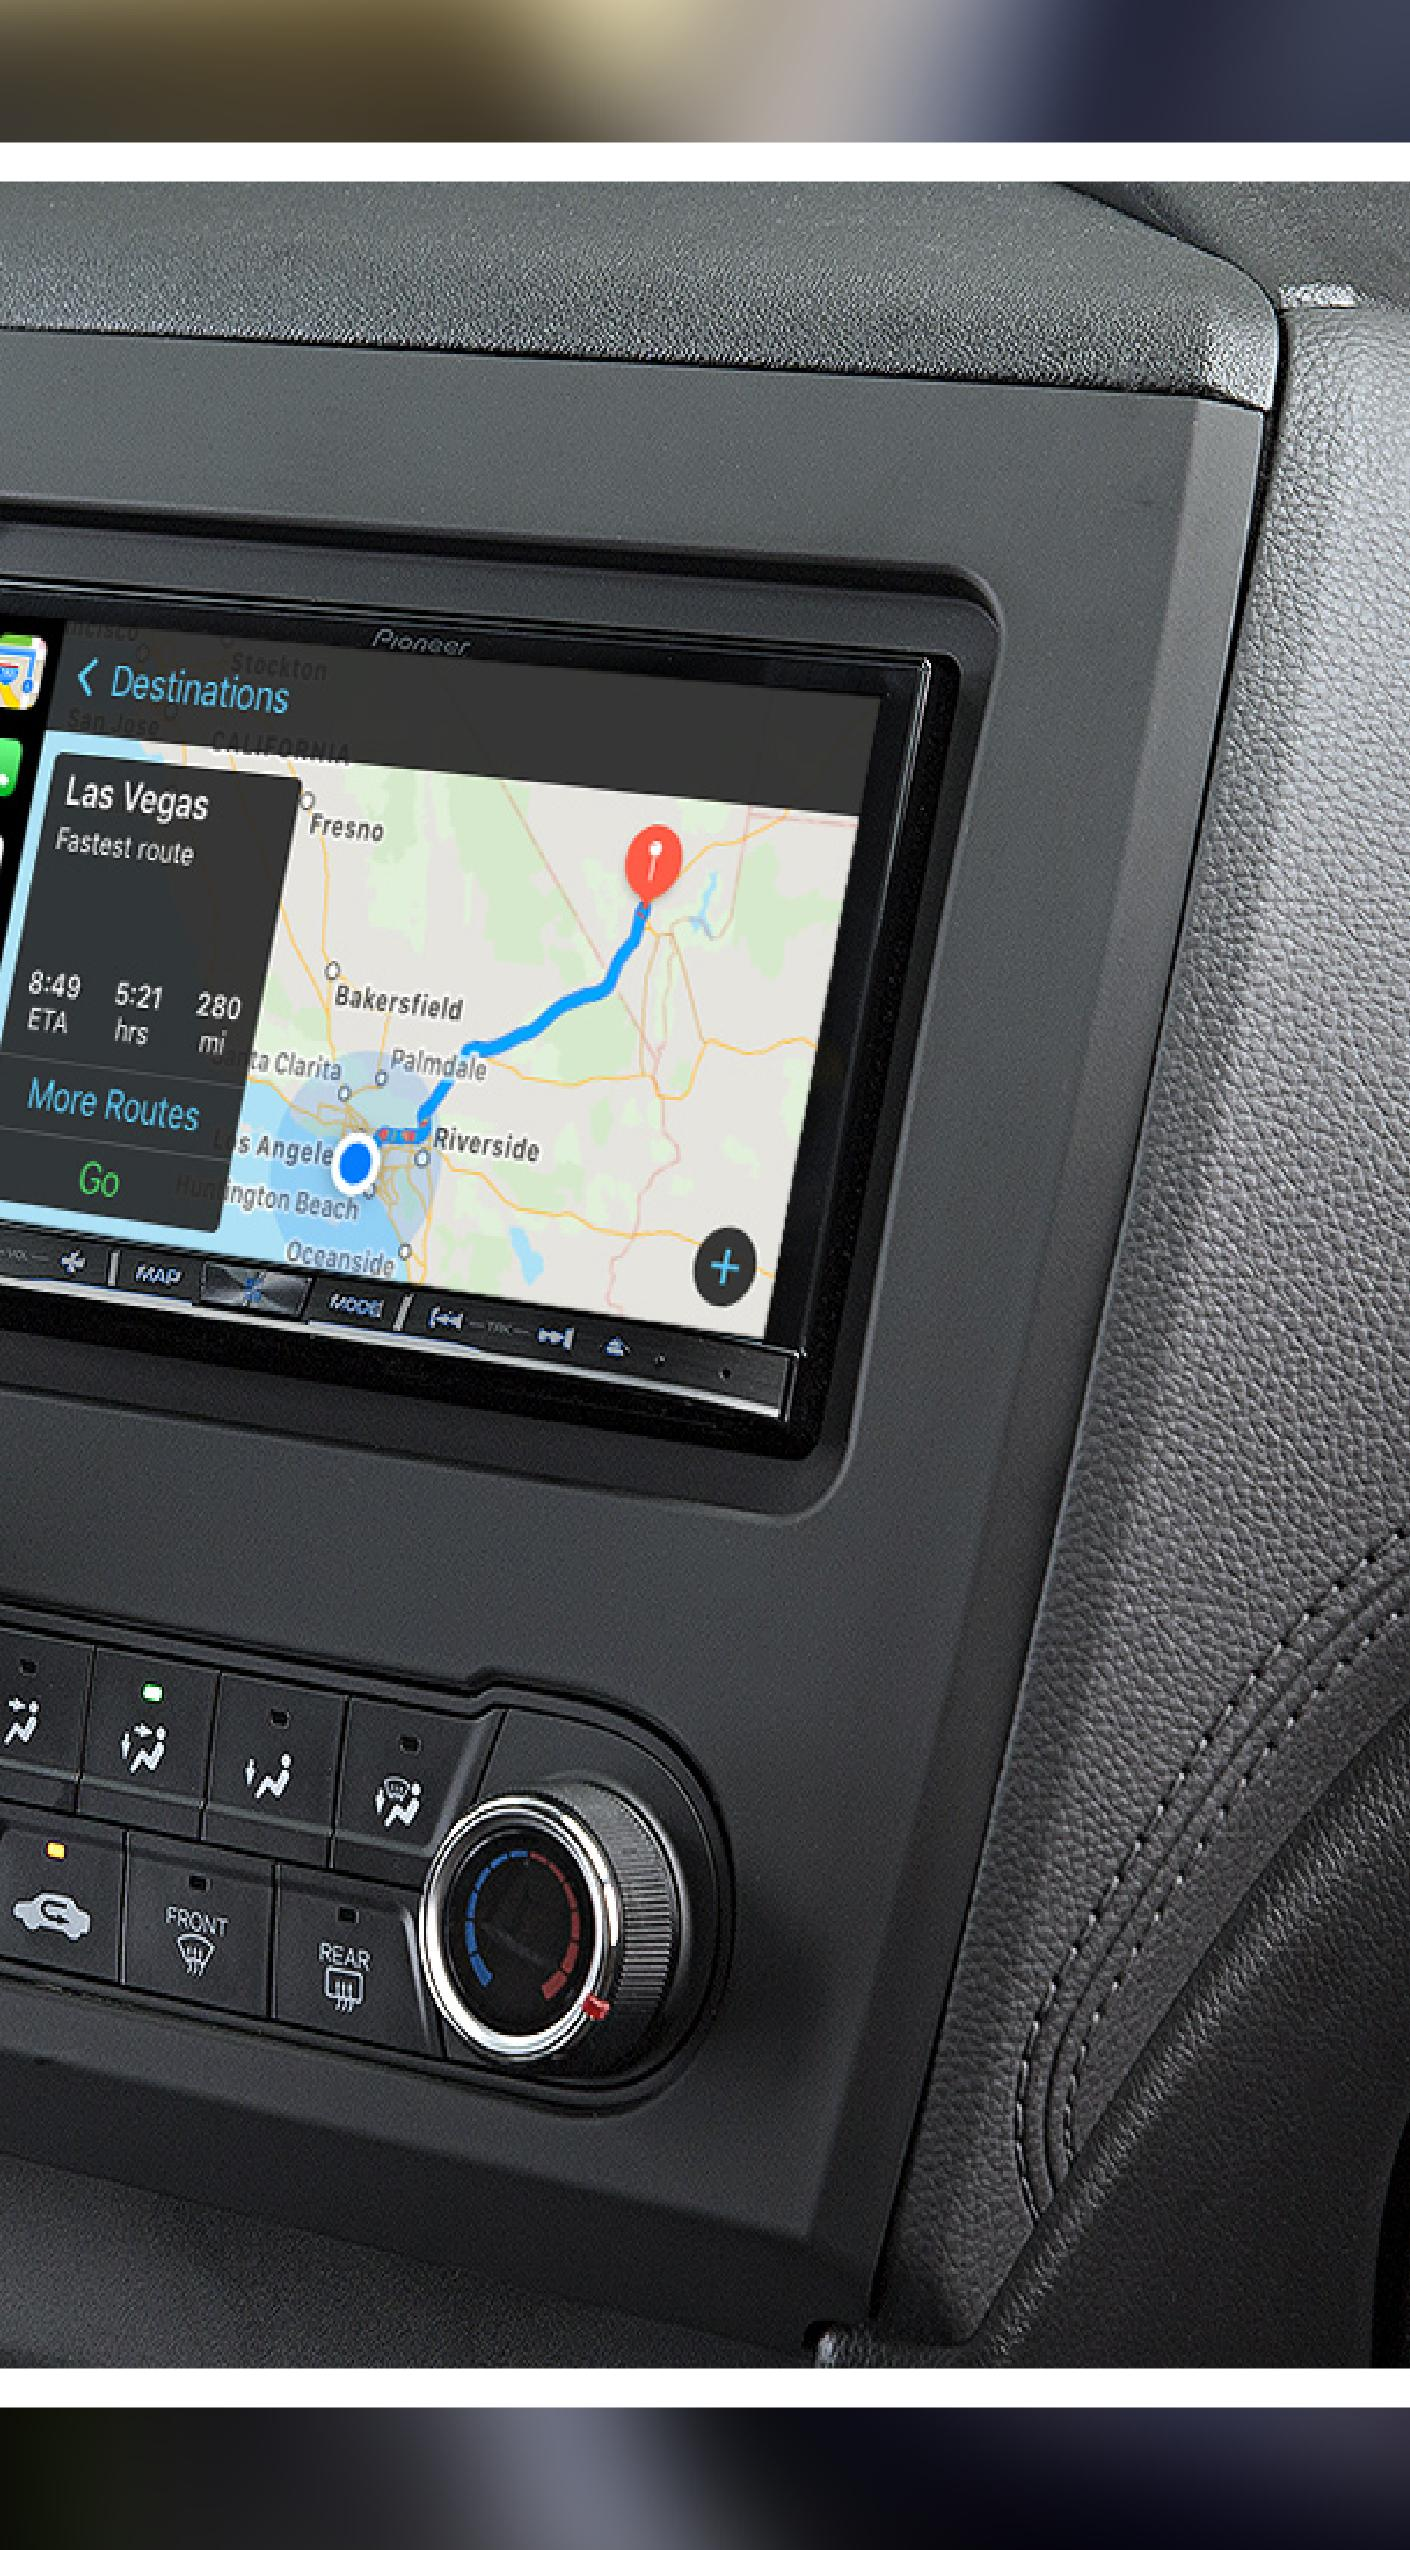 Apple CarPlay Navigation Guide, Android Auto Maps for Android - APK